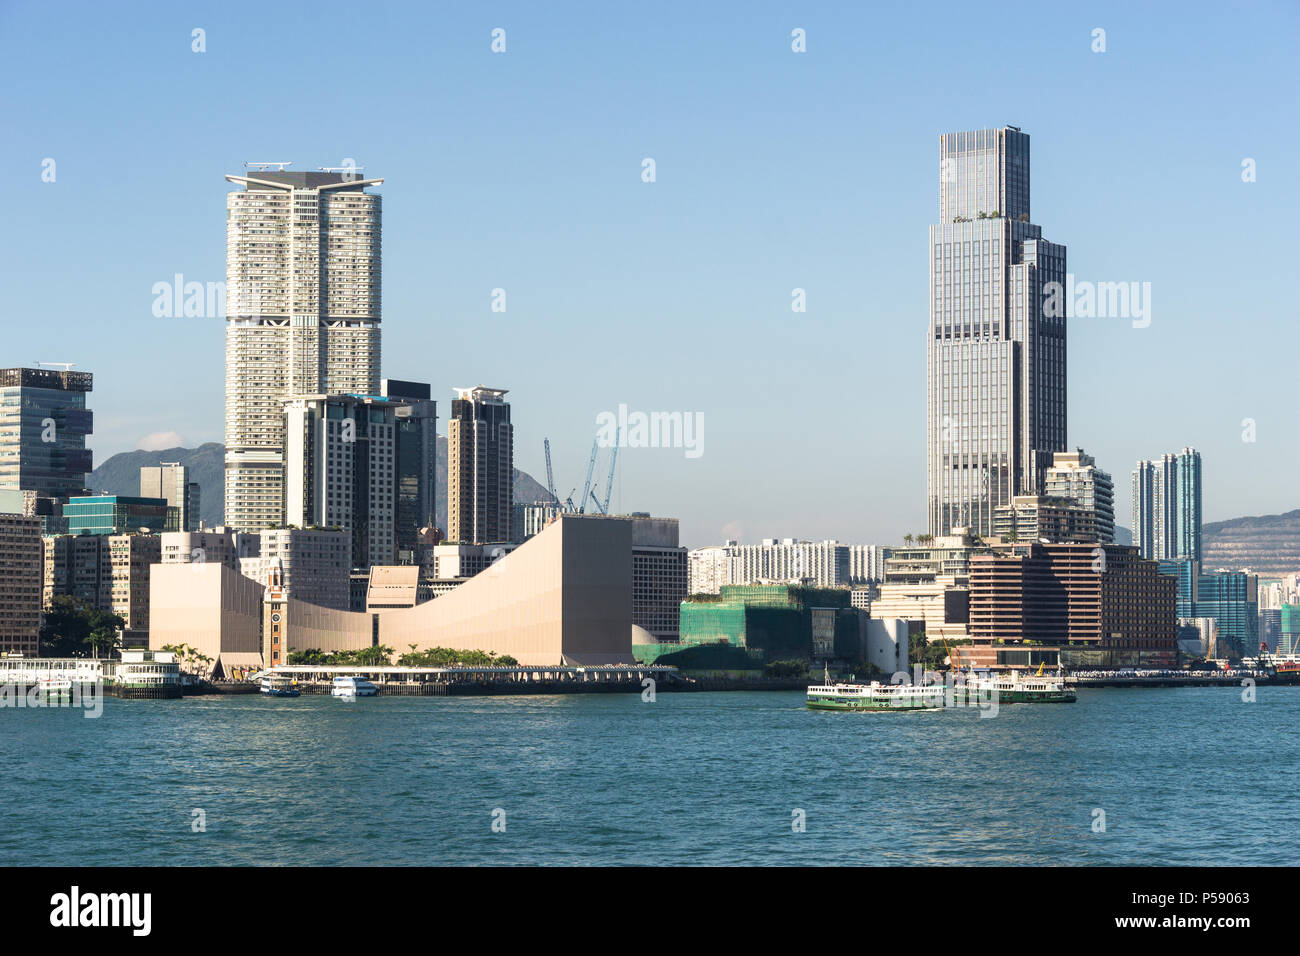 Kowloon skyline at Tsim Sha Tsui view from across the Victoria harbour in Hong Kong on a sunny day in China SAR. Stock Photo